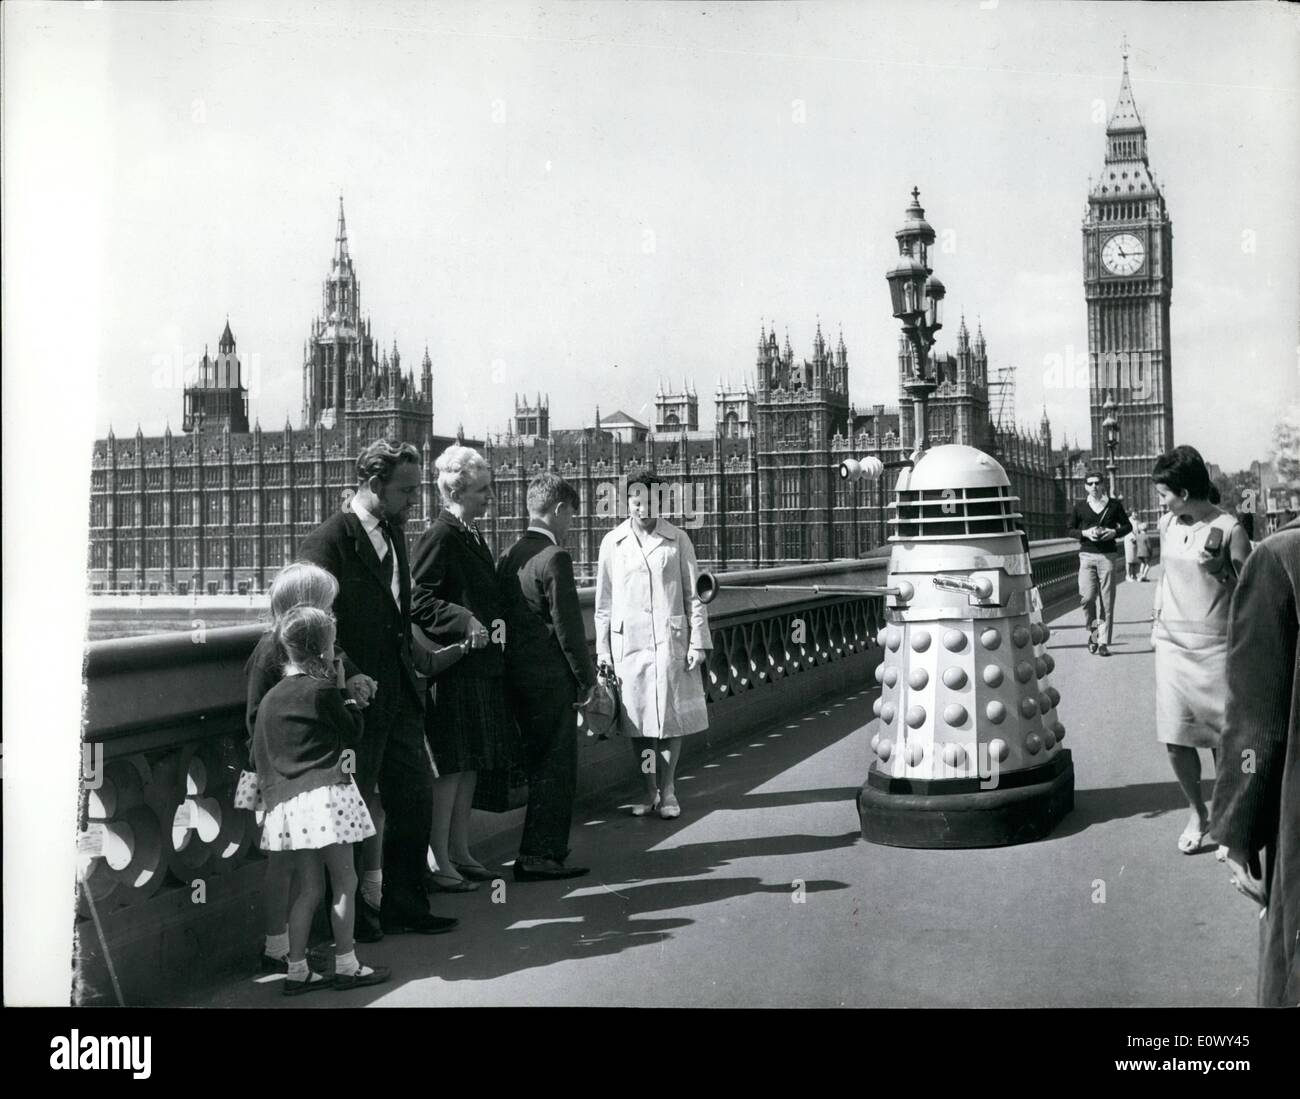 Aug. 08, 1964 - Location Hunting with the ''Daleks''. ''Landing on Westminster Bridge''.: To be seen on a tour of London this morning location hunting were the ''Daleks'' - those 'space' creatures for the new BBC TV series ''Dr. Who'' - which starts in November. Photo shows Passer-by wonder what is happening - as the ''Dalek'' - 'lands' on Westminster Bridge this morning. - Stock Image